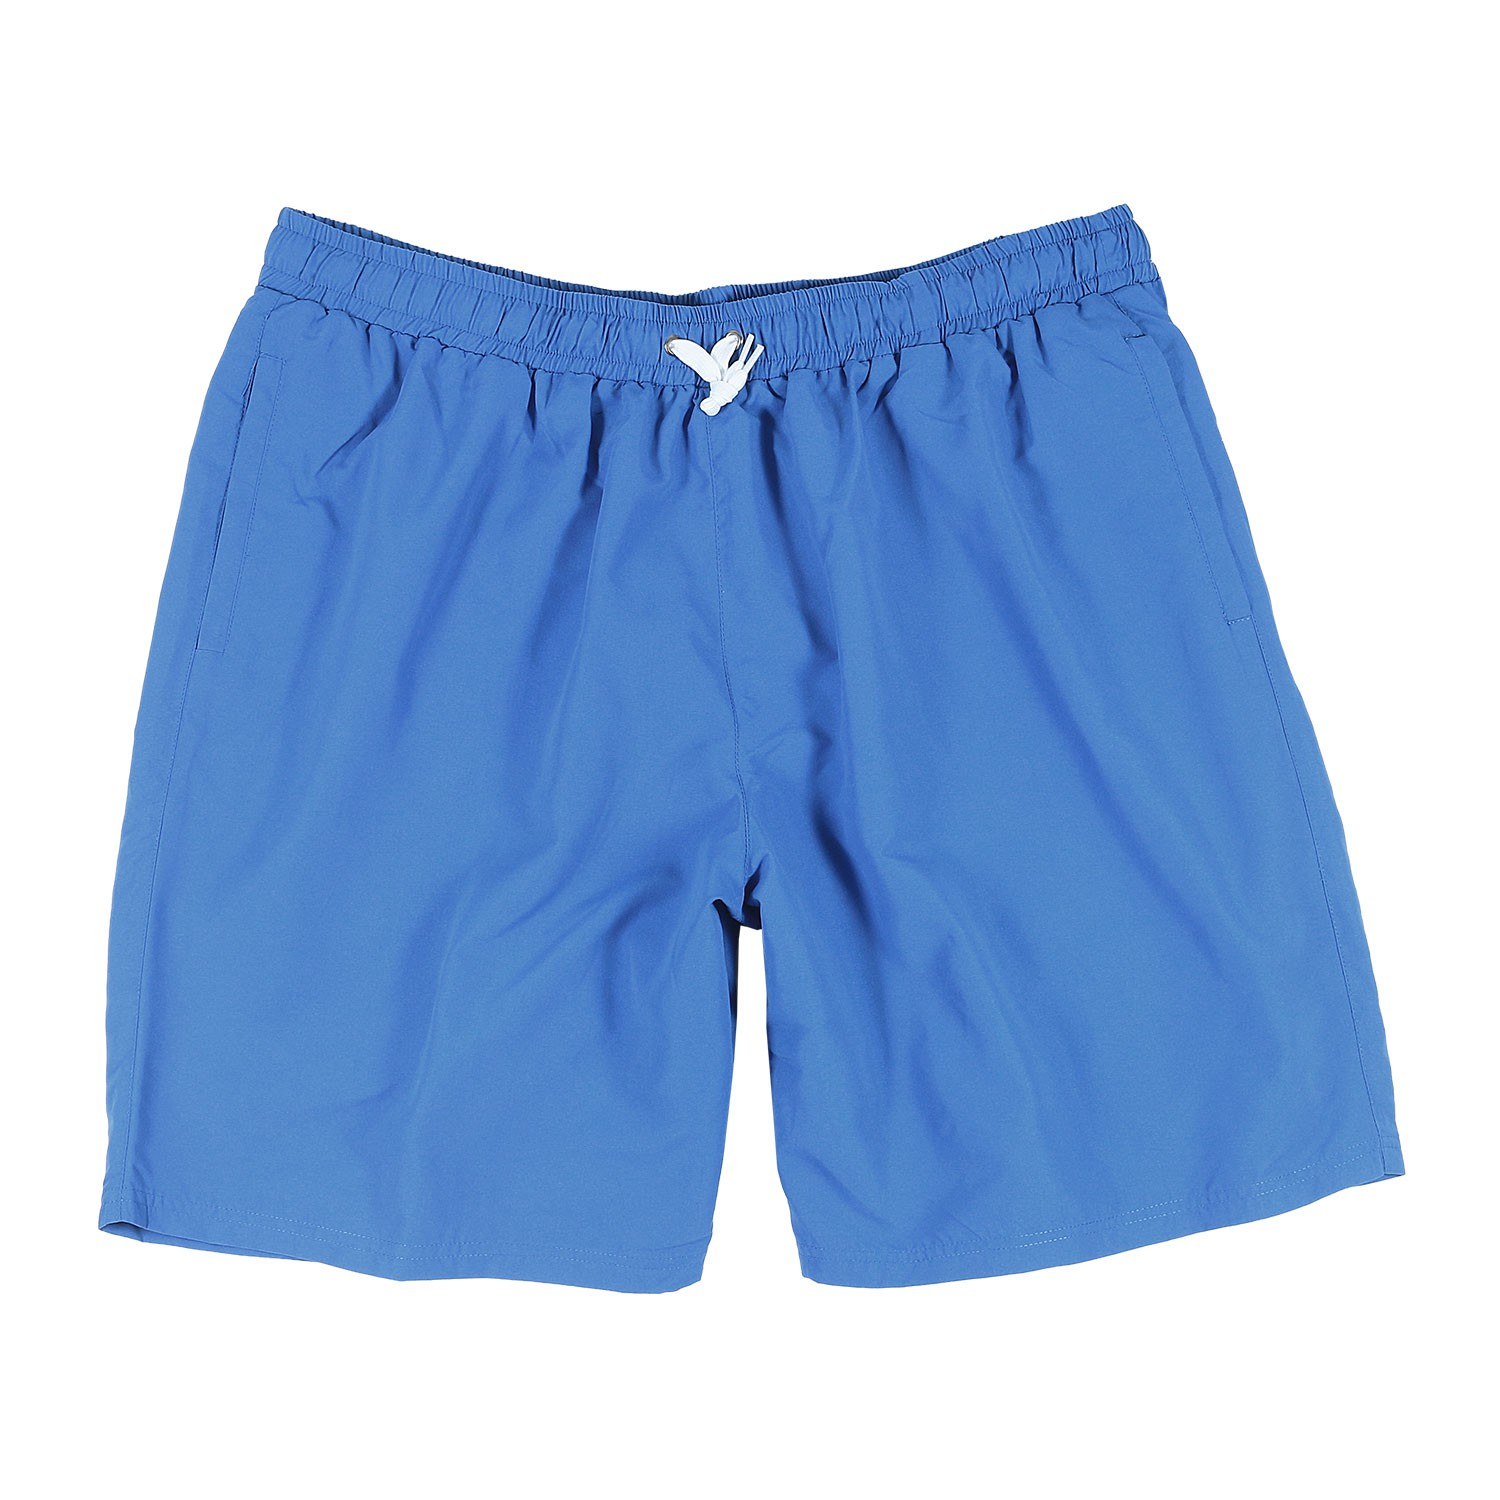 Detail Image to Swimming trunks in royal blue up to oversize 10XL- Abraxas